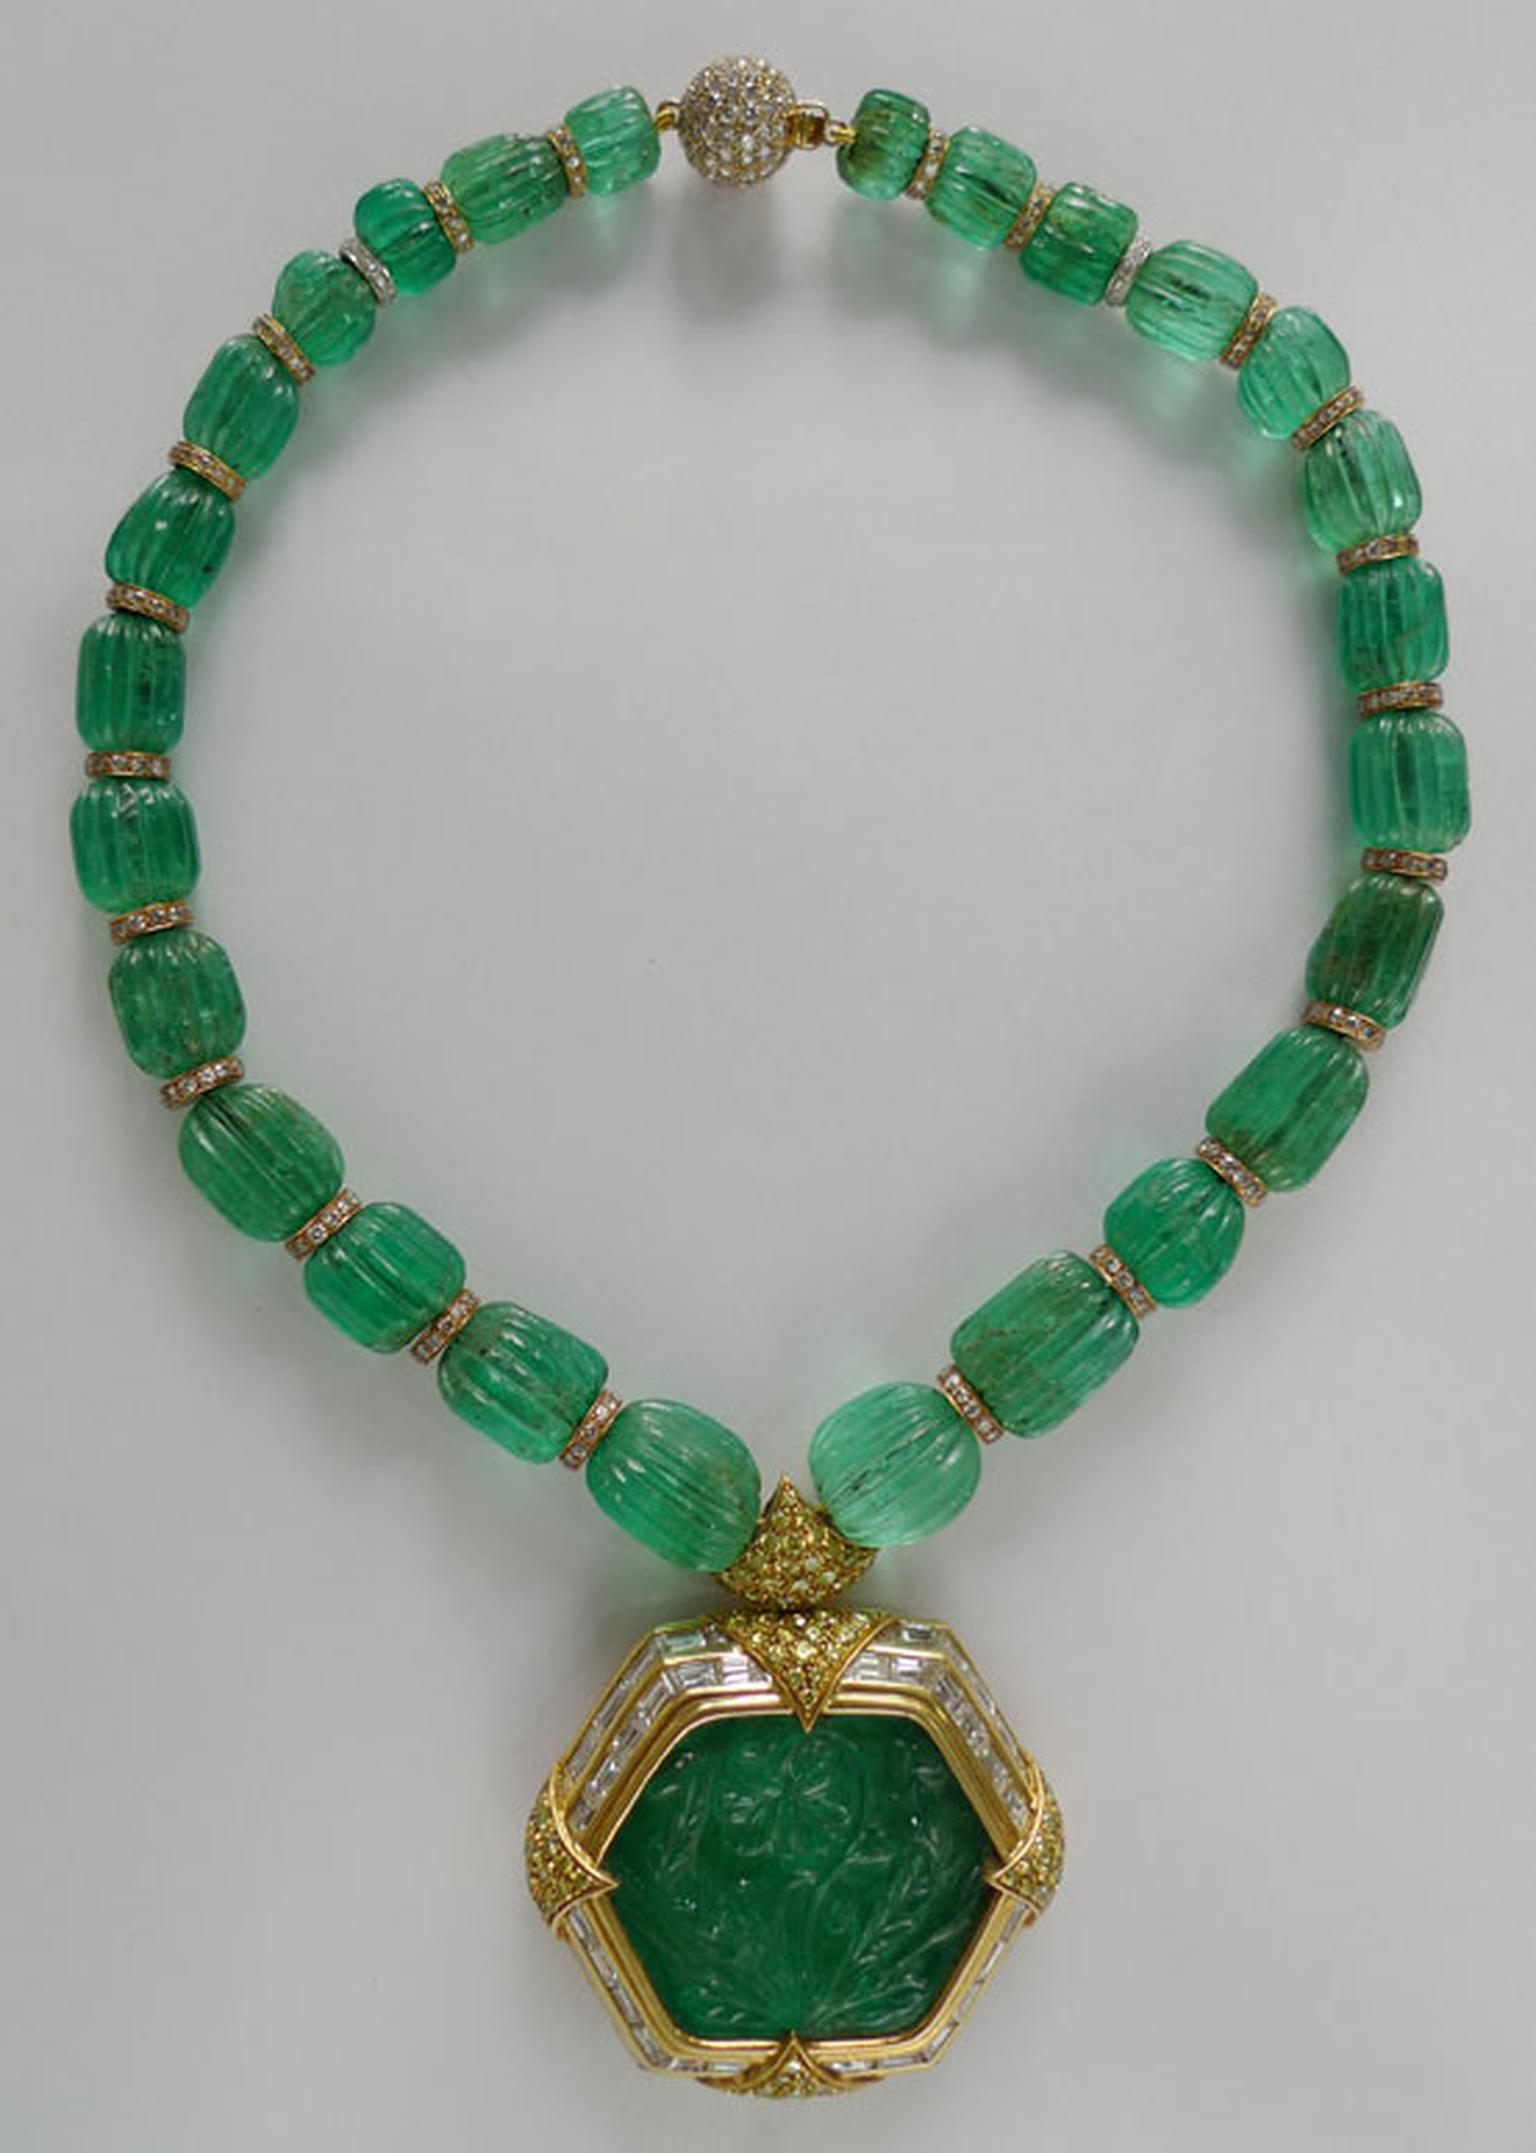 Gem Palace emerald necklace featuring a central carved emerald.